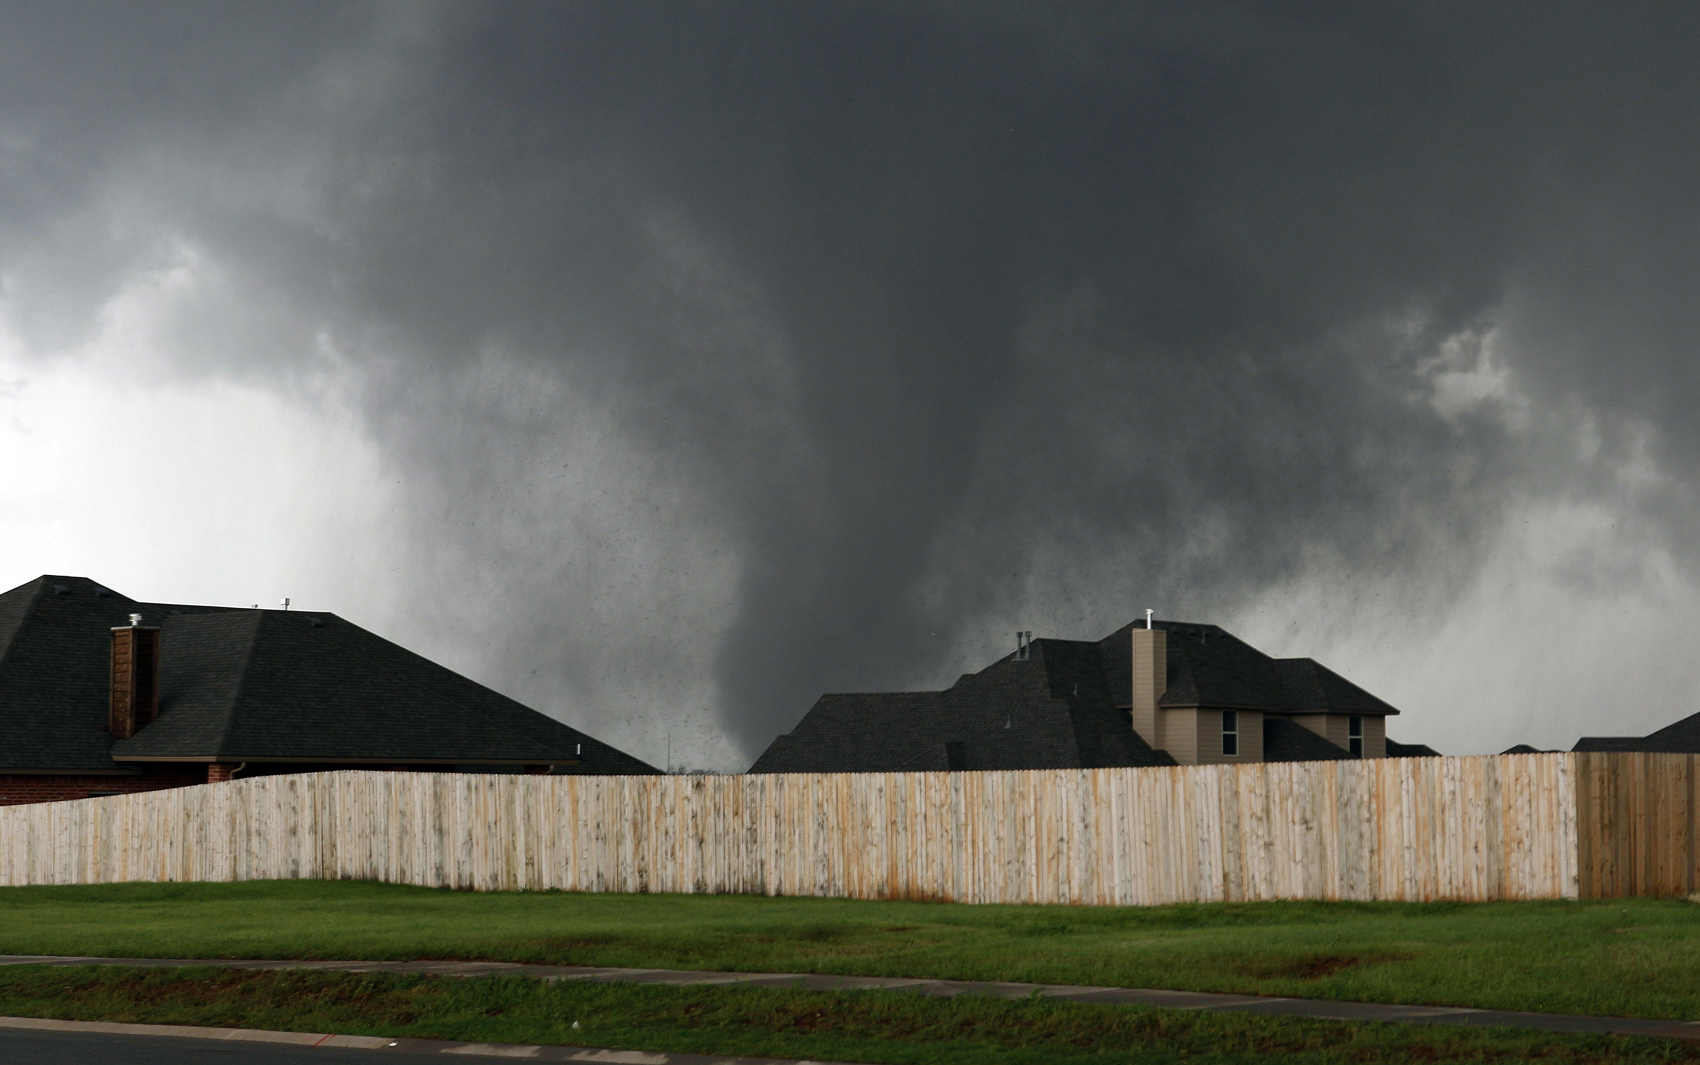 Tornado passa por casas em Moore, Oklahoma, nos Estados Unidos, nesta segunda-feira (20). 